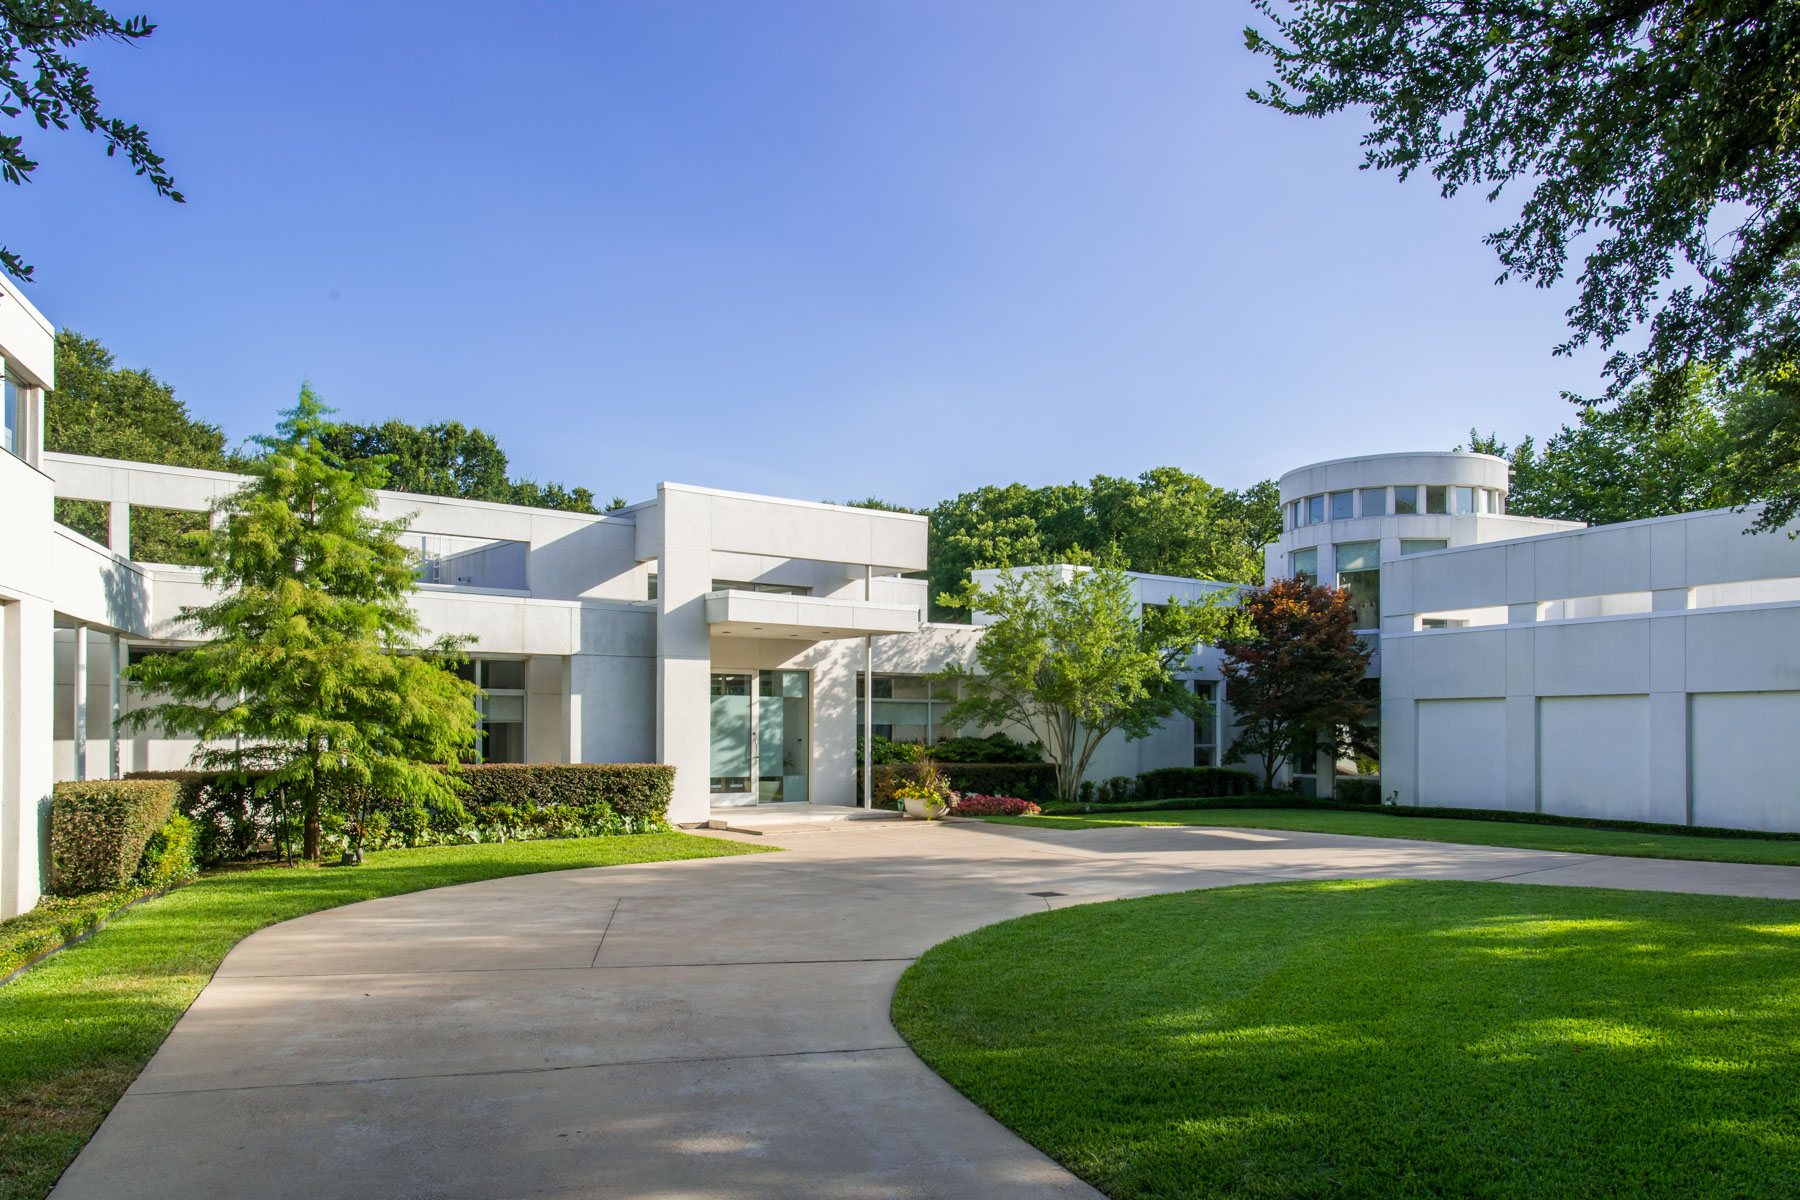 Single Family Home for Sale at Cochran Chapel Modern Contemporary 4130 Cochran Chapel Road Dallas, Texas 75209 United States